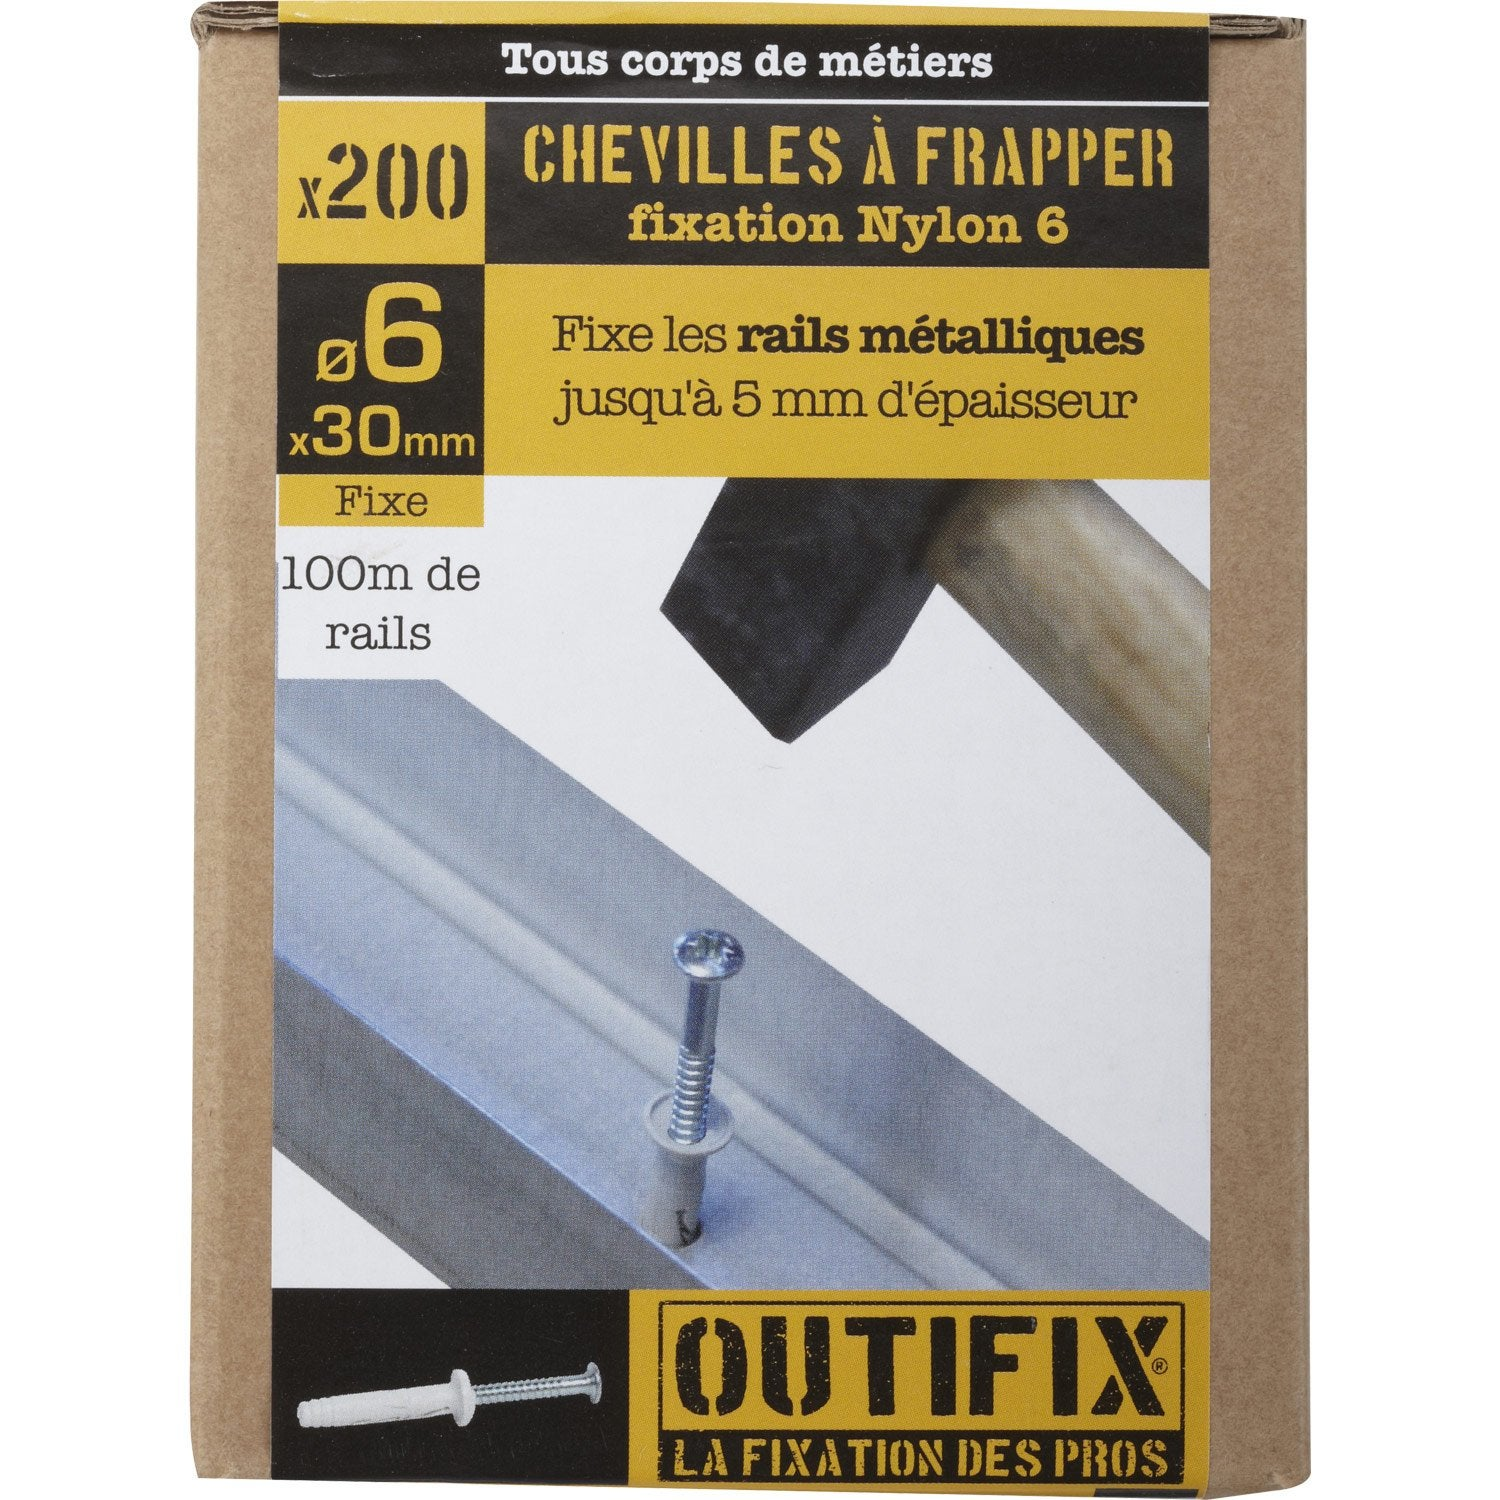 200 chevilles vis expansion outifix 6 x 30mm leroy merlin - Cheville a frapper leroy merlin ...